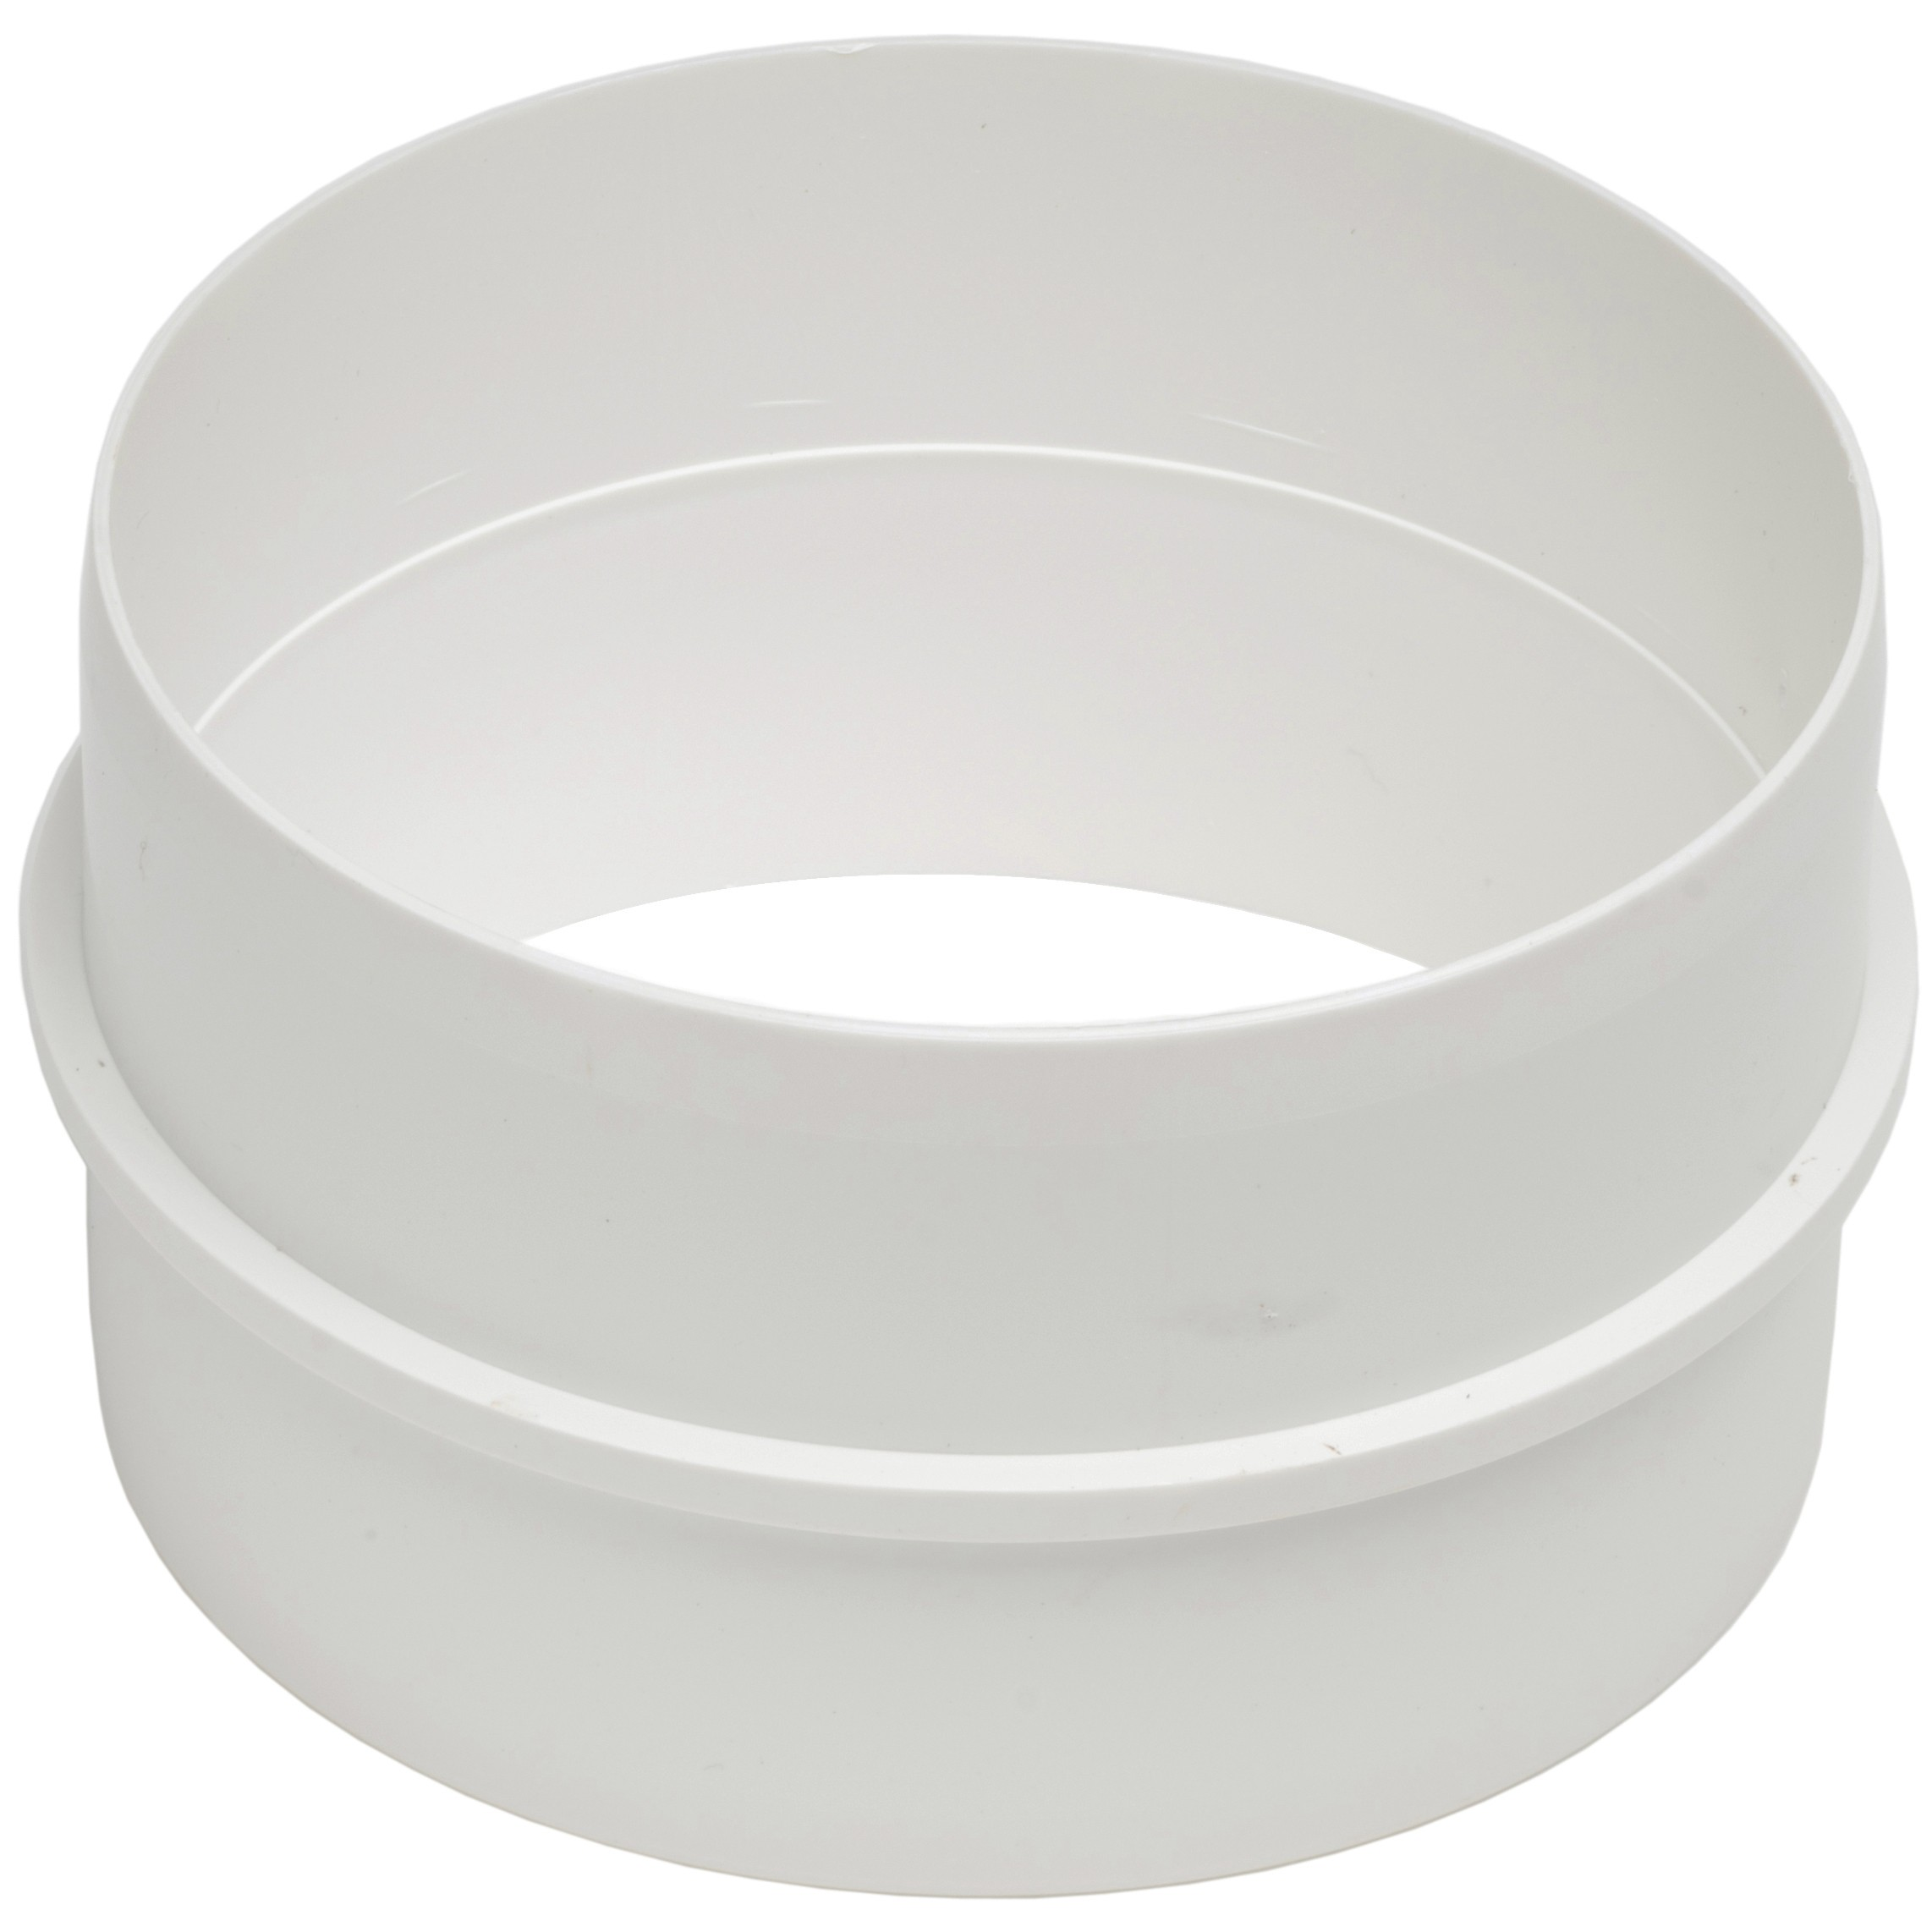 Manrose Round Ducting Pipe Connector - White, 120mm